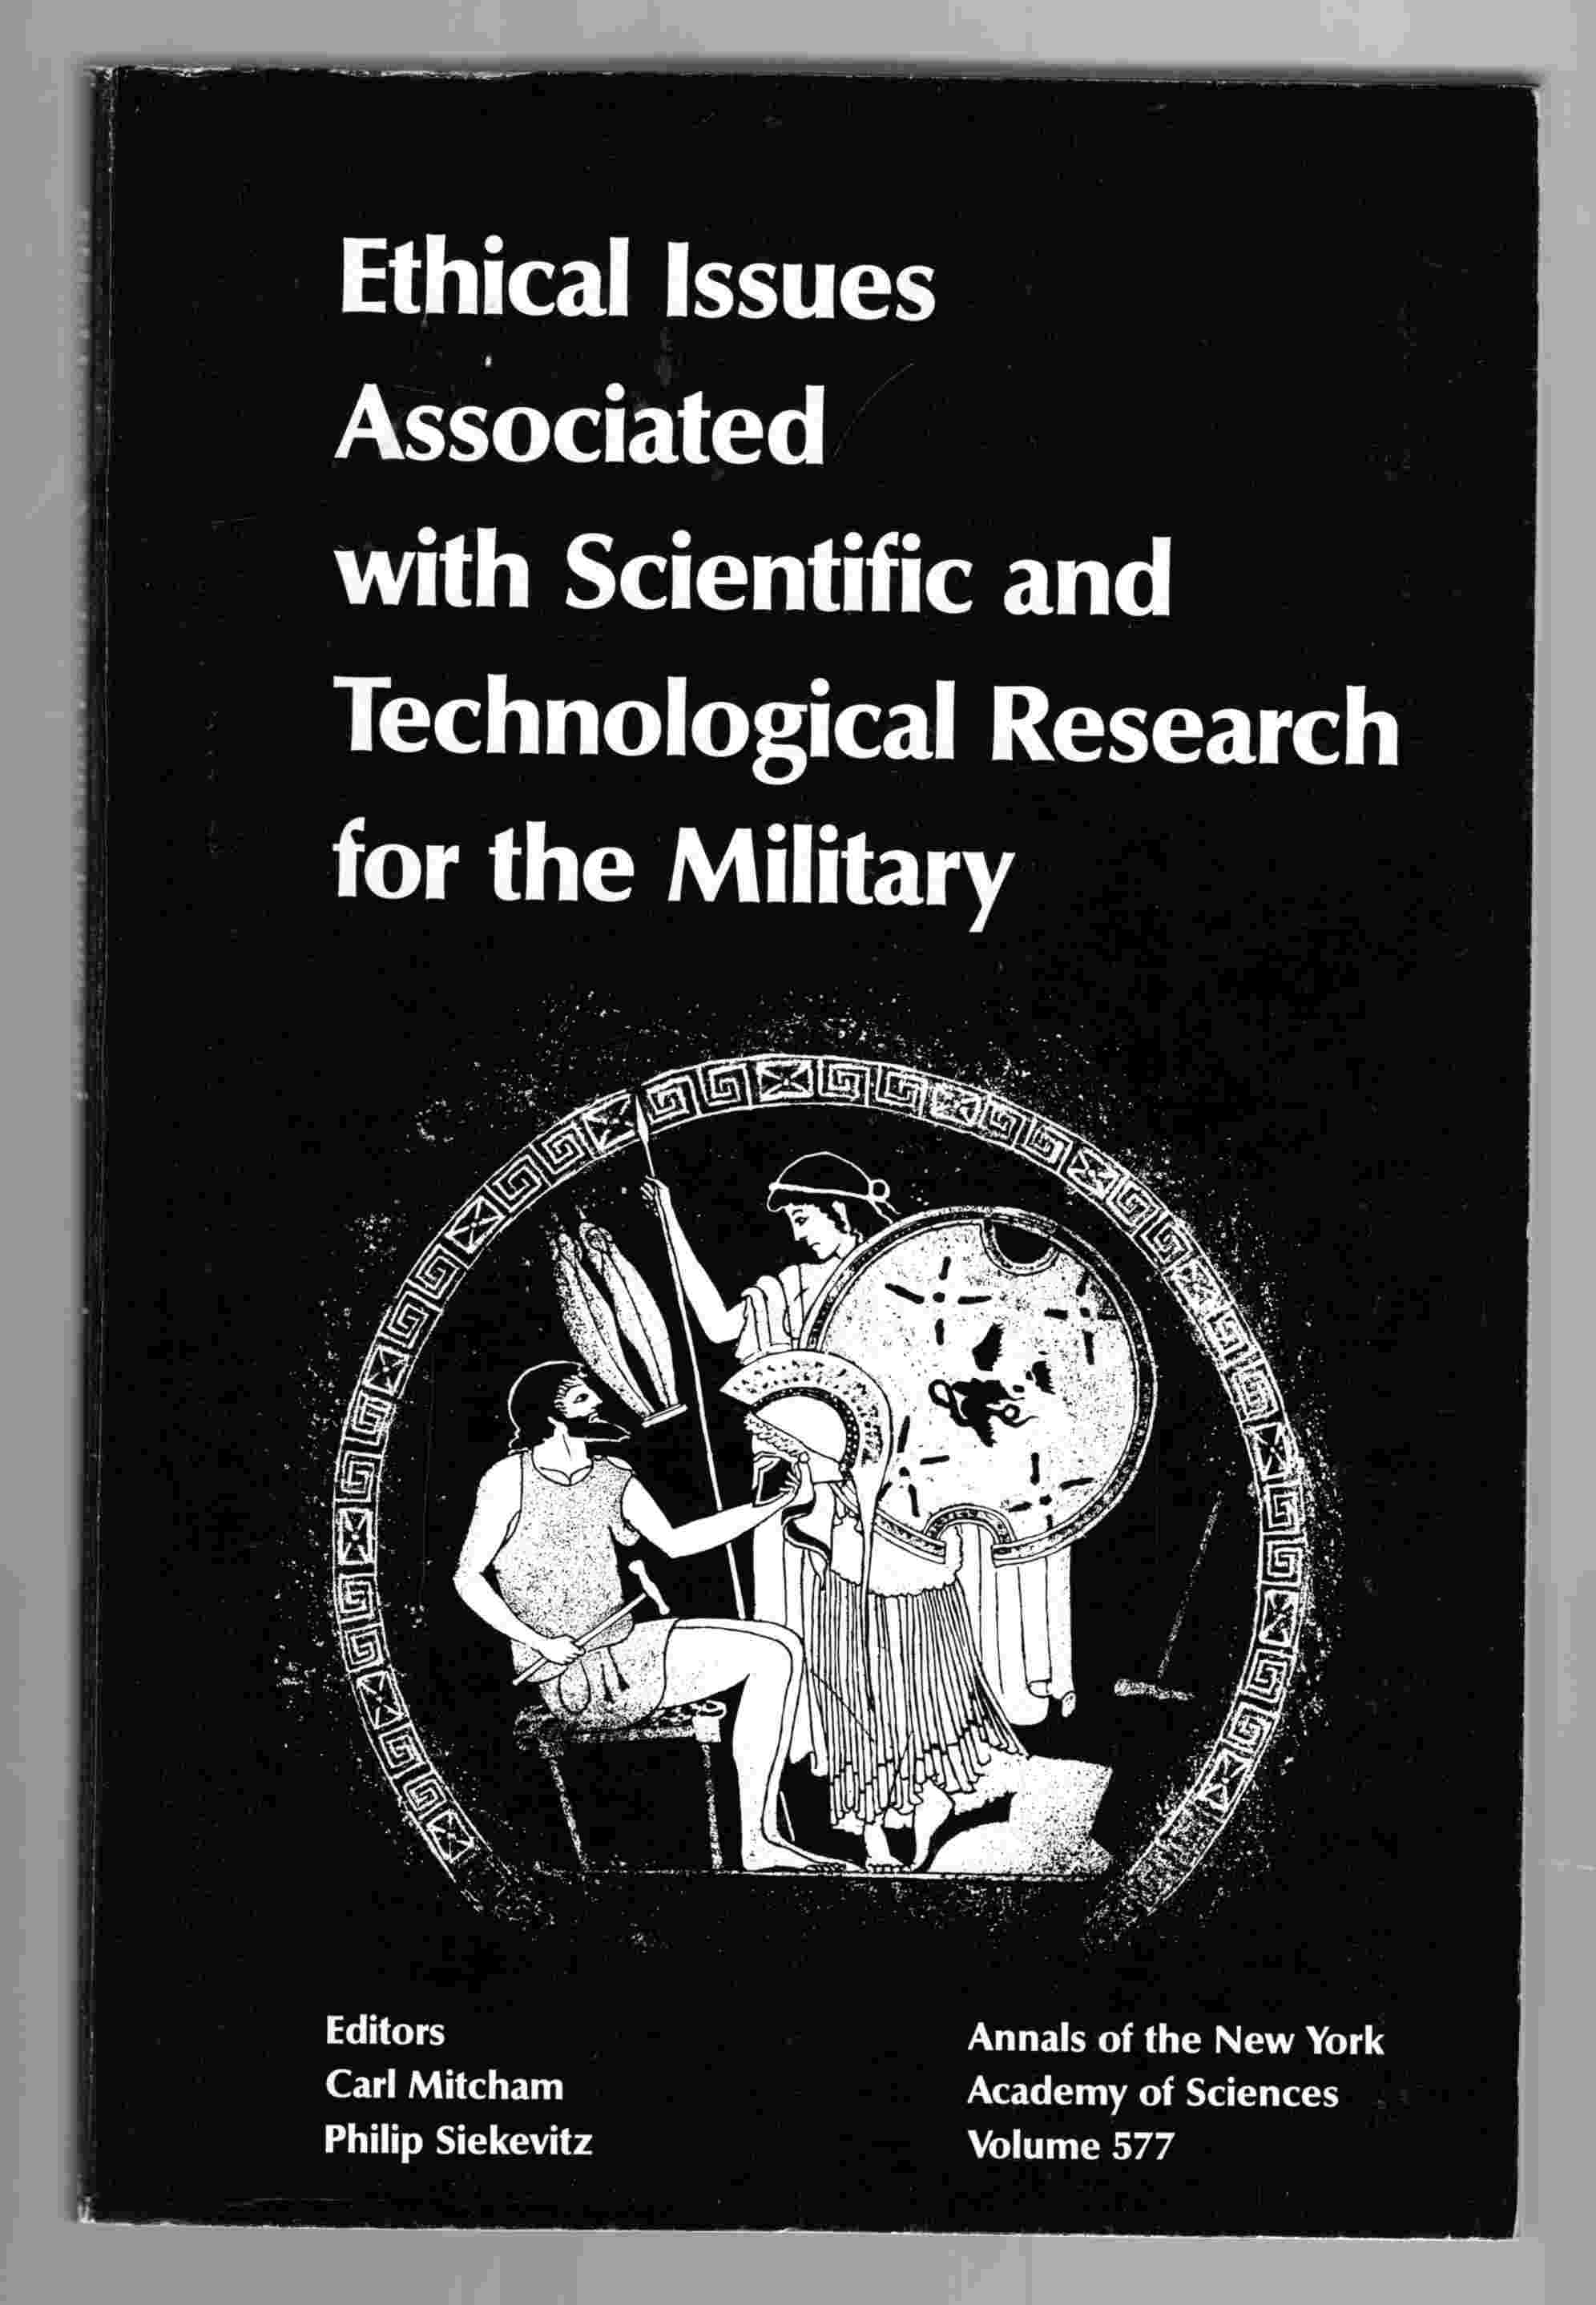 Image for Ethical Issues with Scientific and Technological Research for the Military